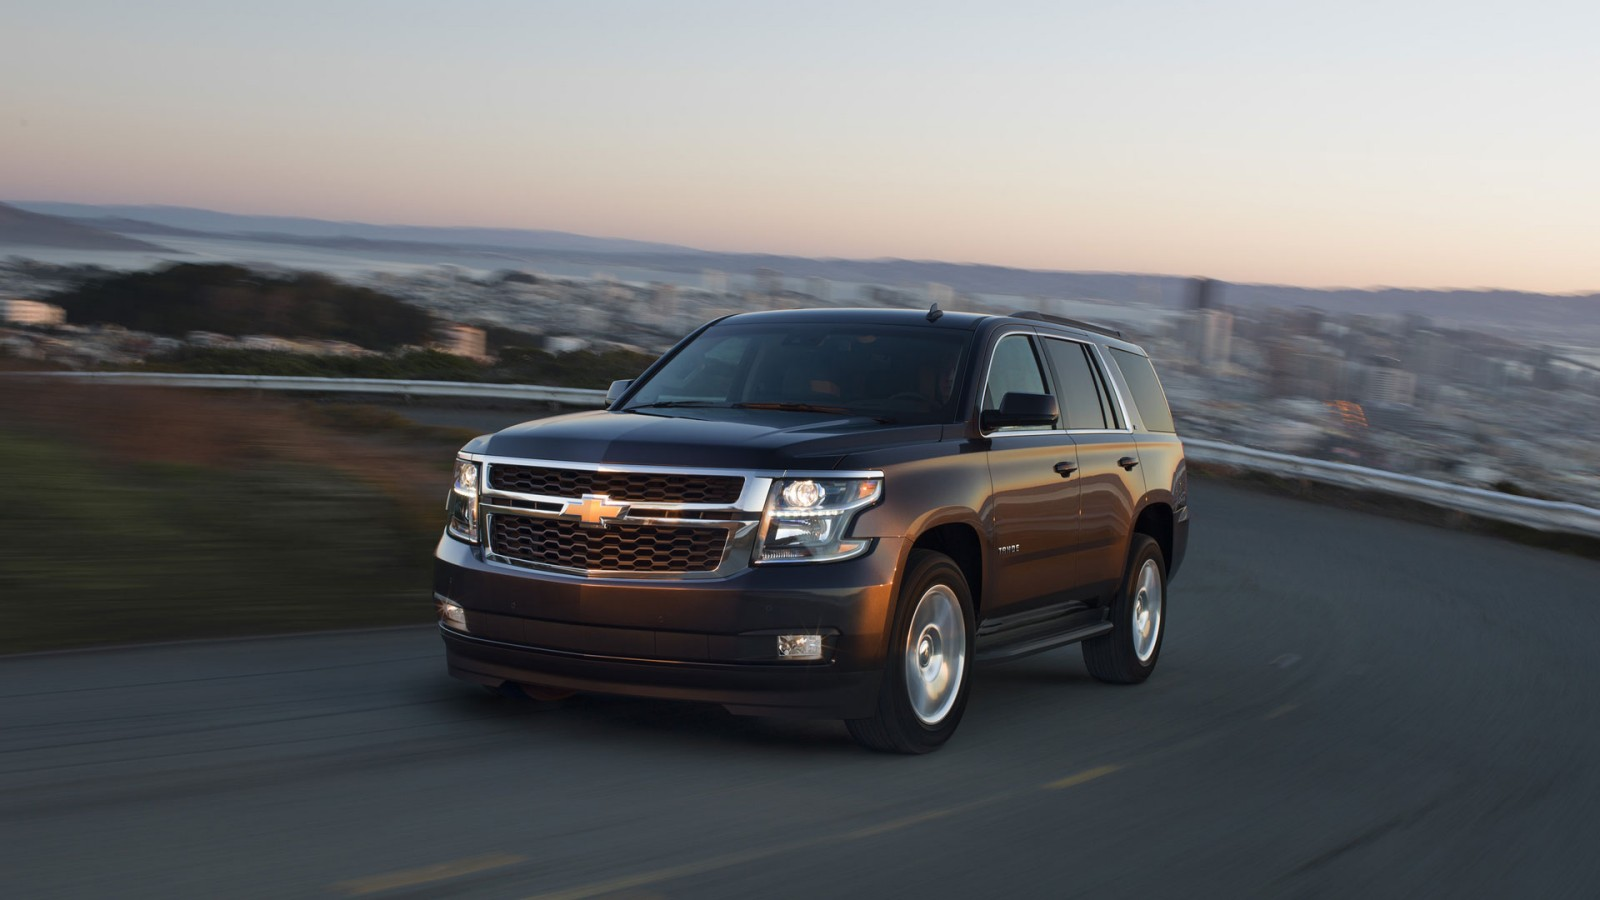 2016 Chevrolet Tahoe on the road